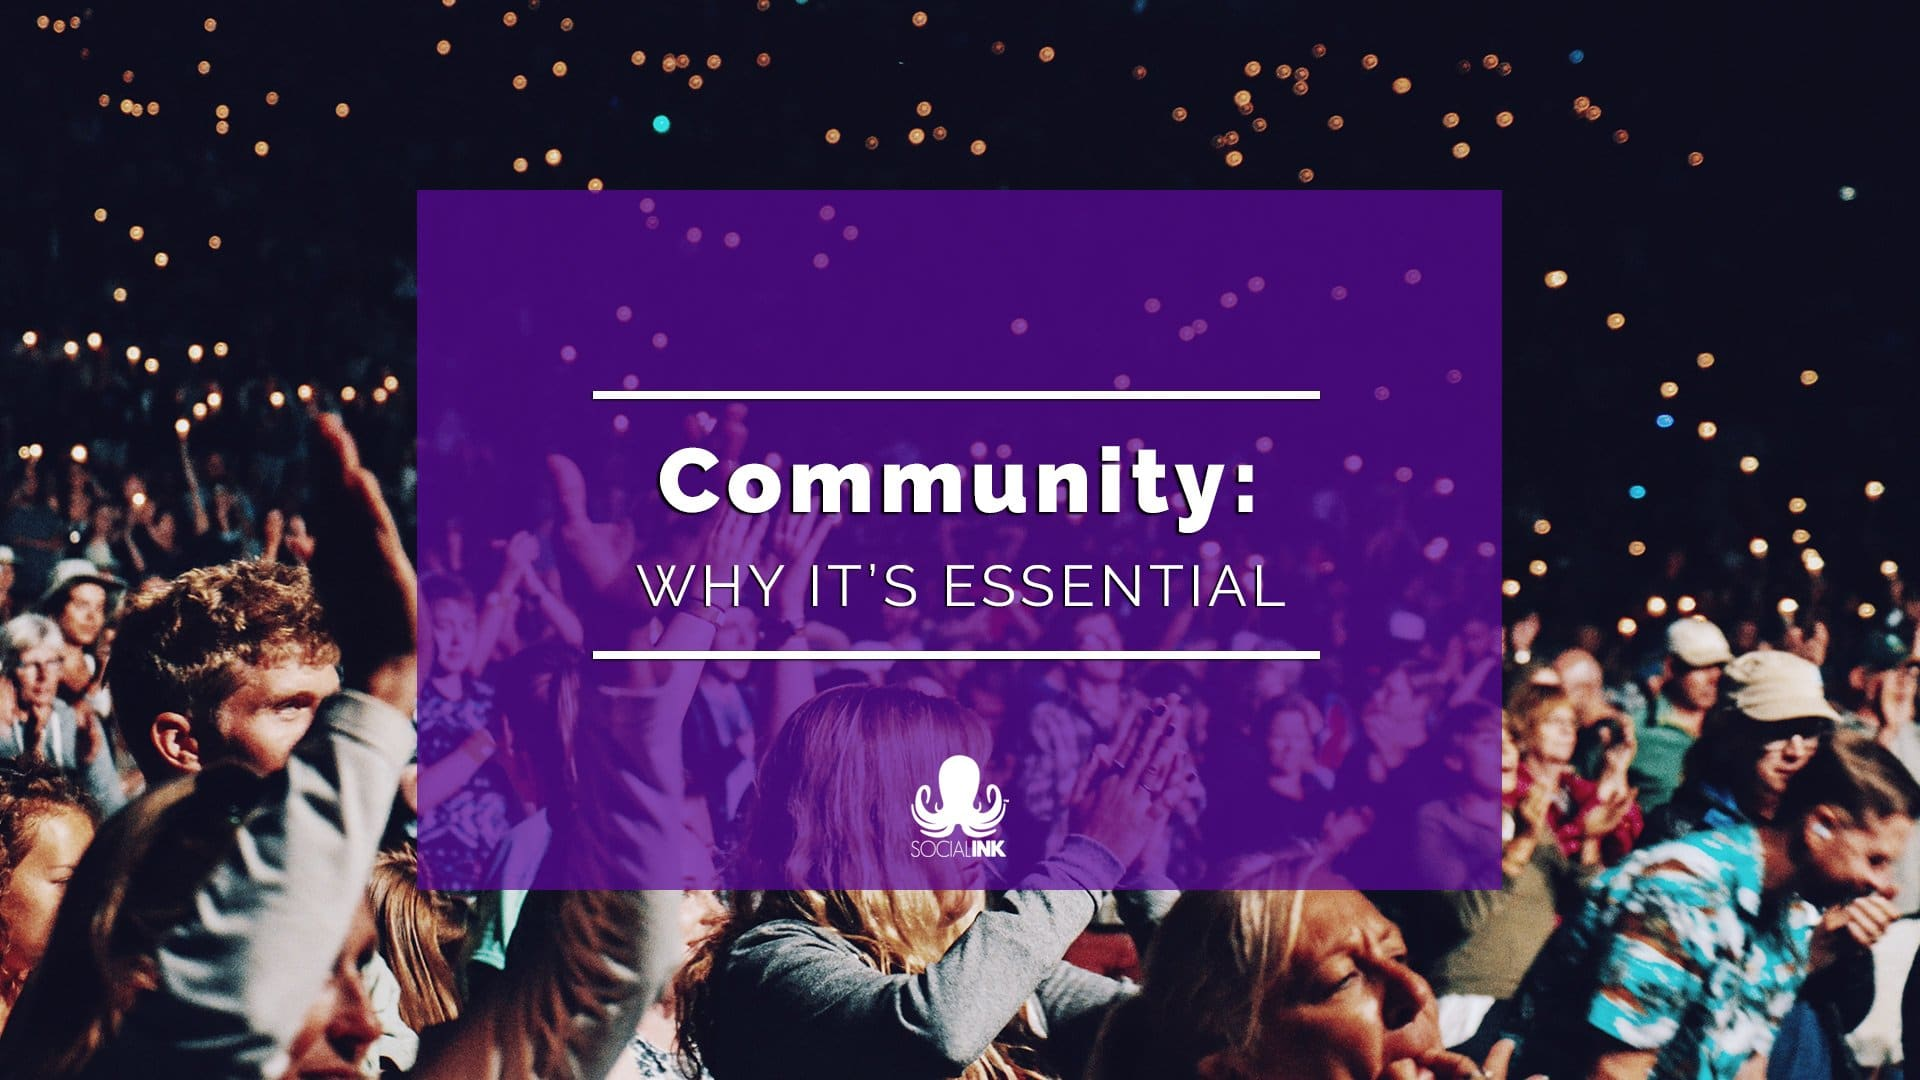 Community-Building Isn't Optional Anymore